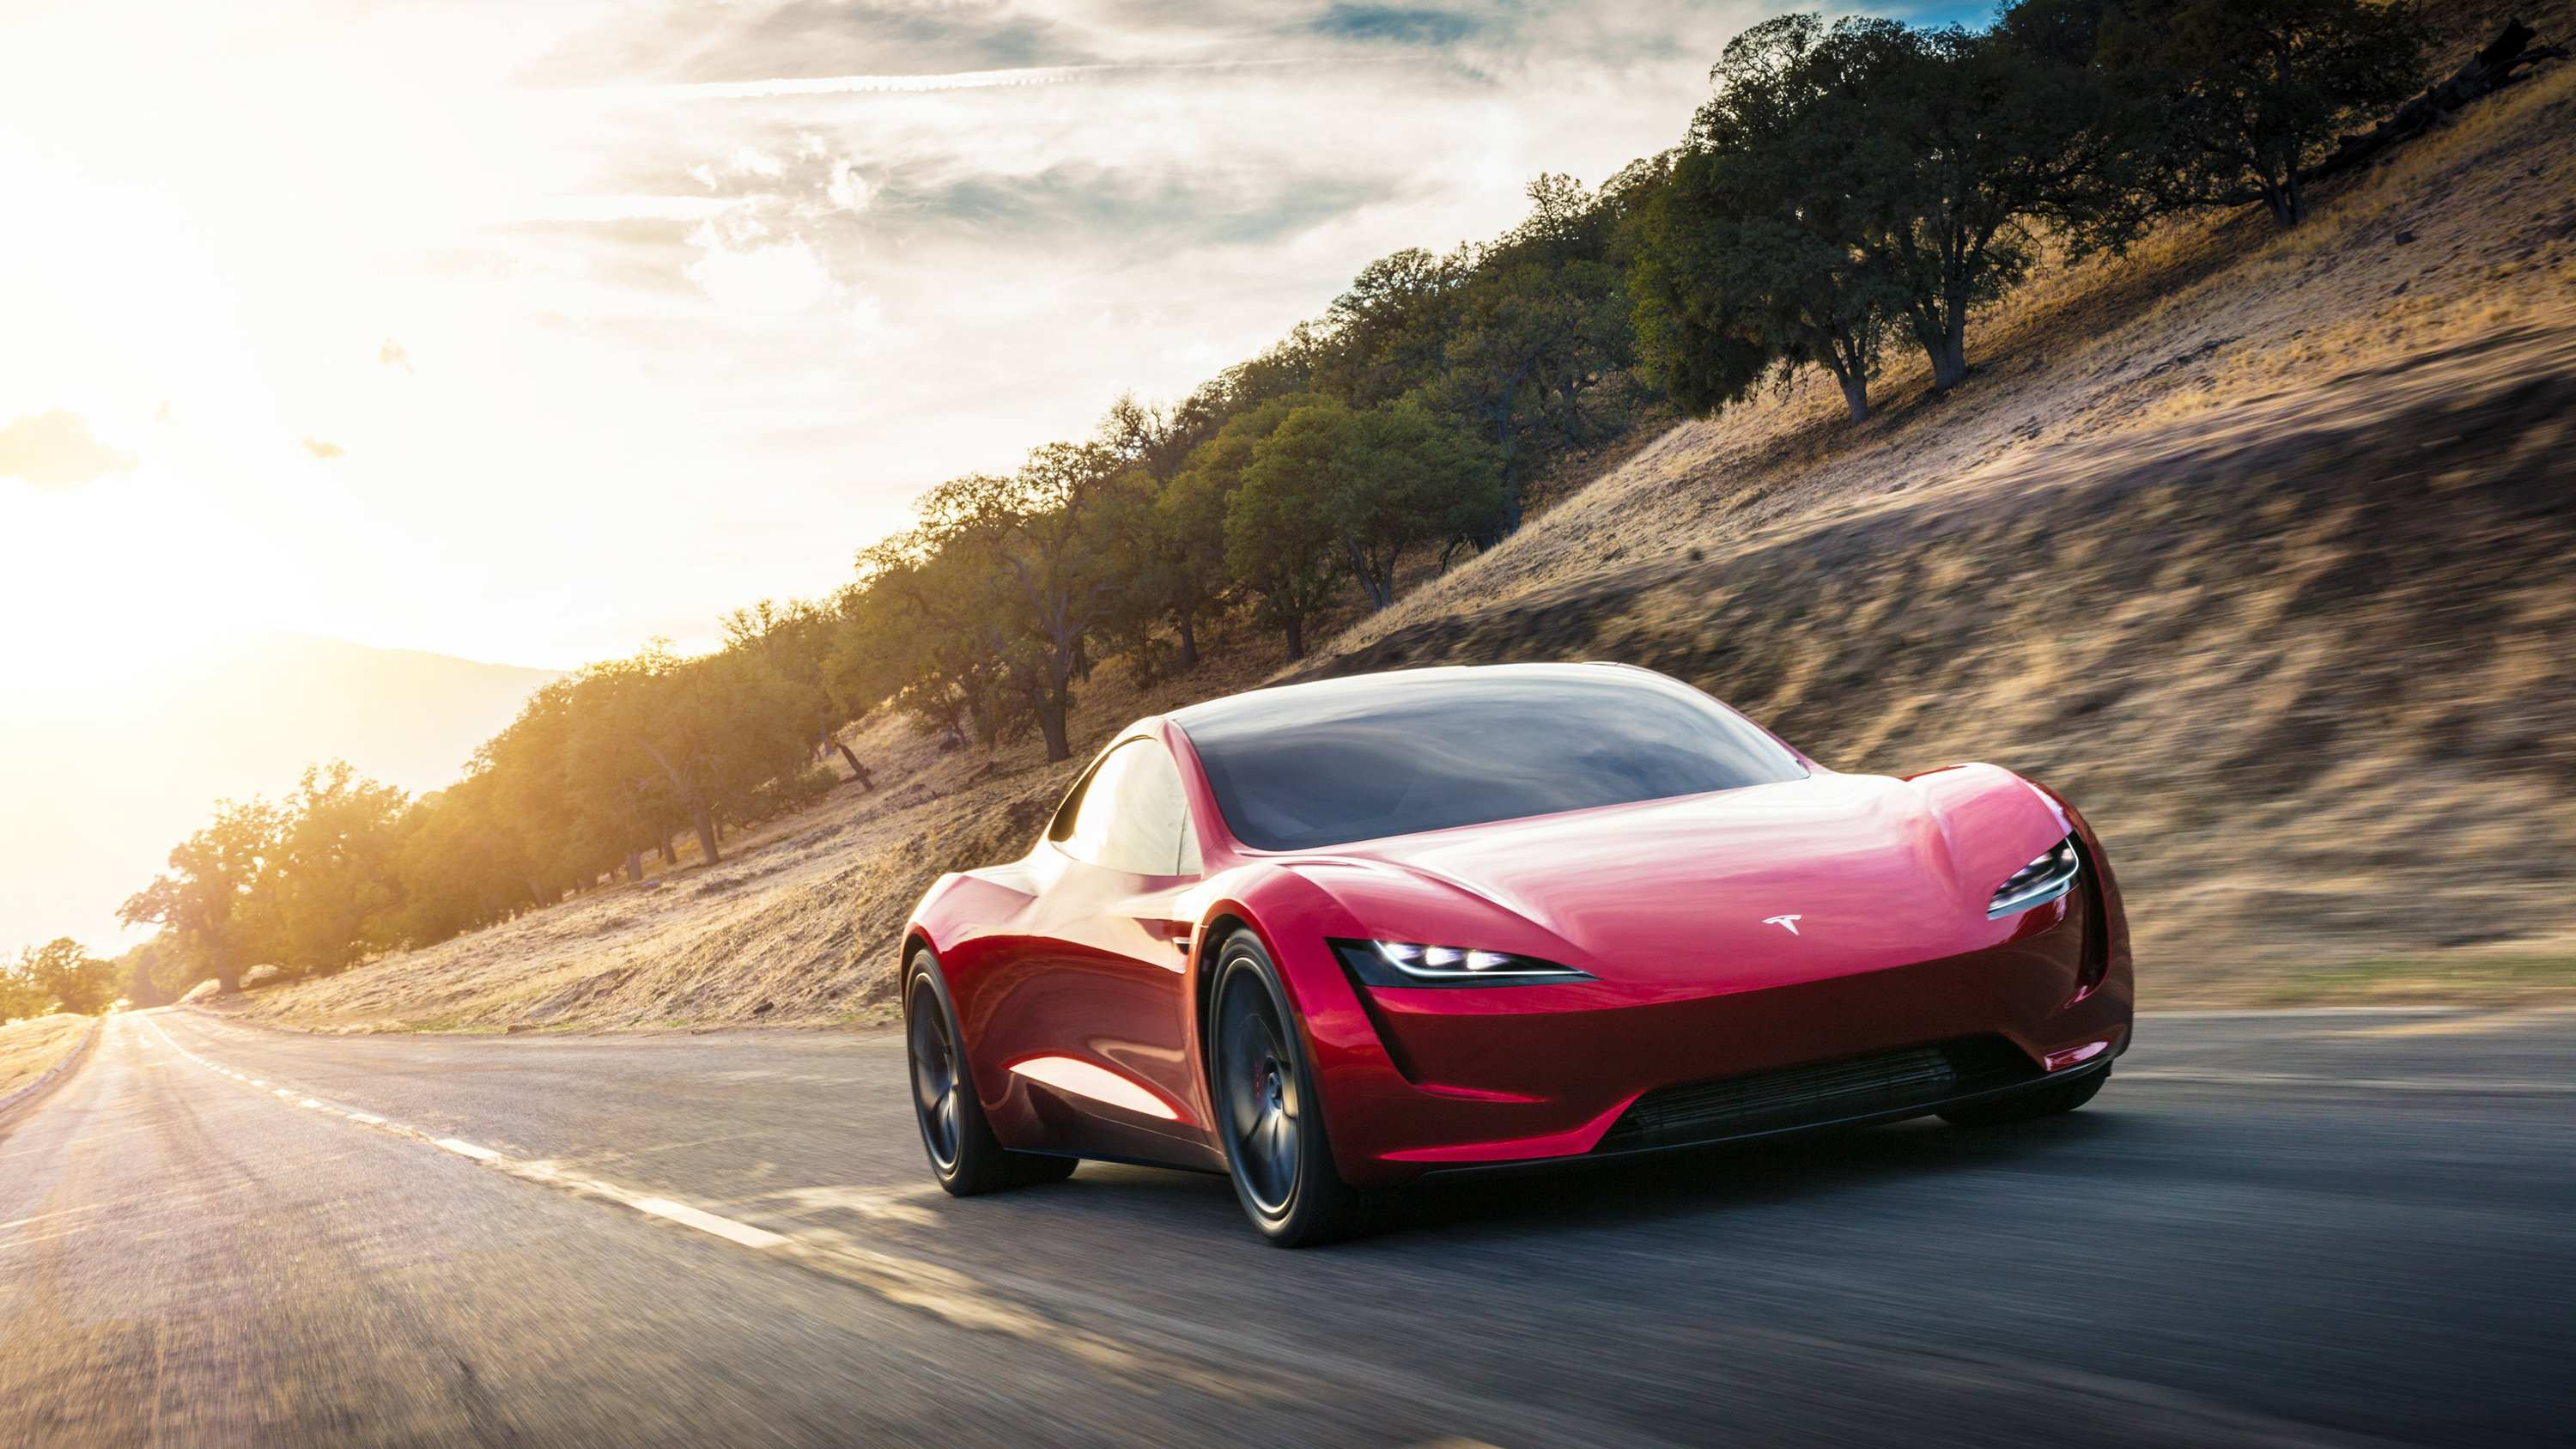 66 New Tesla In 2020 Picture for Tesla In 2020